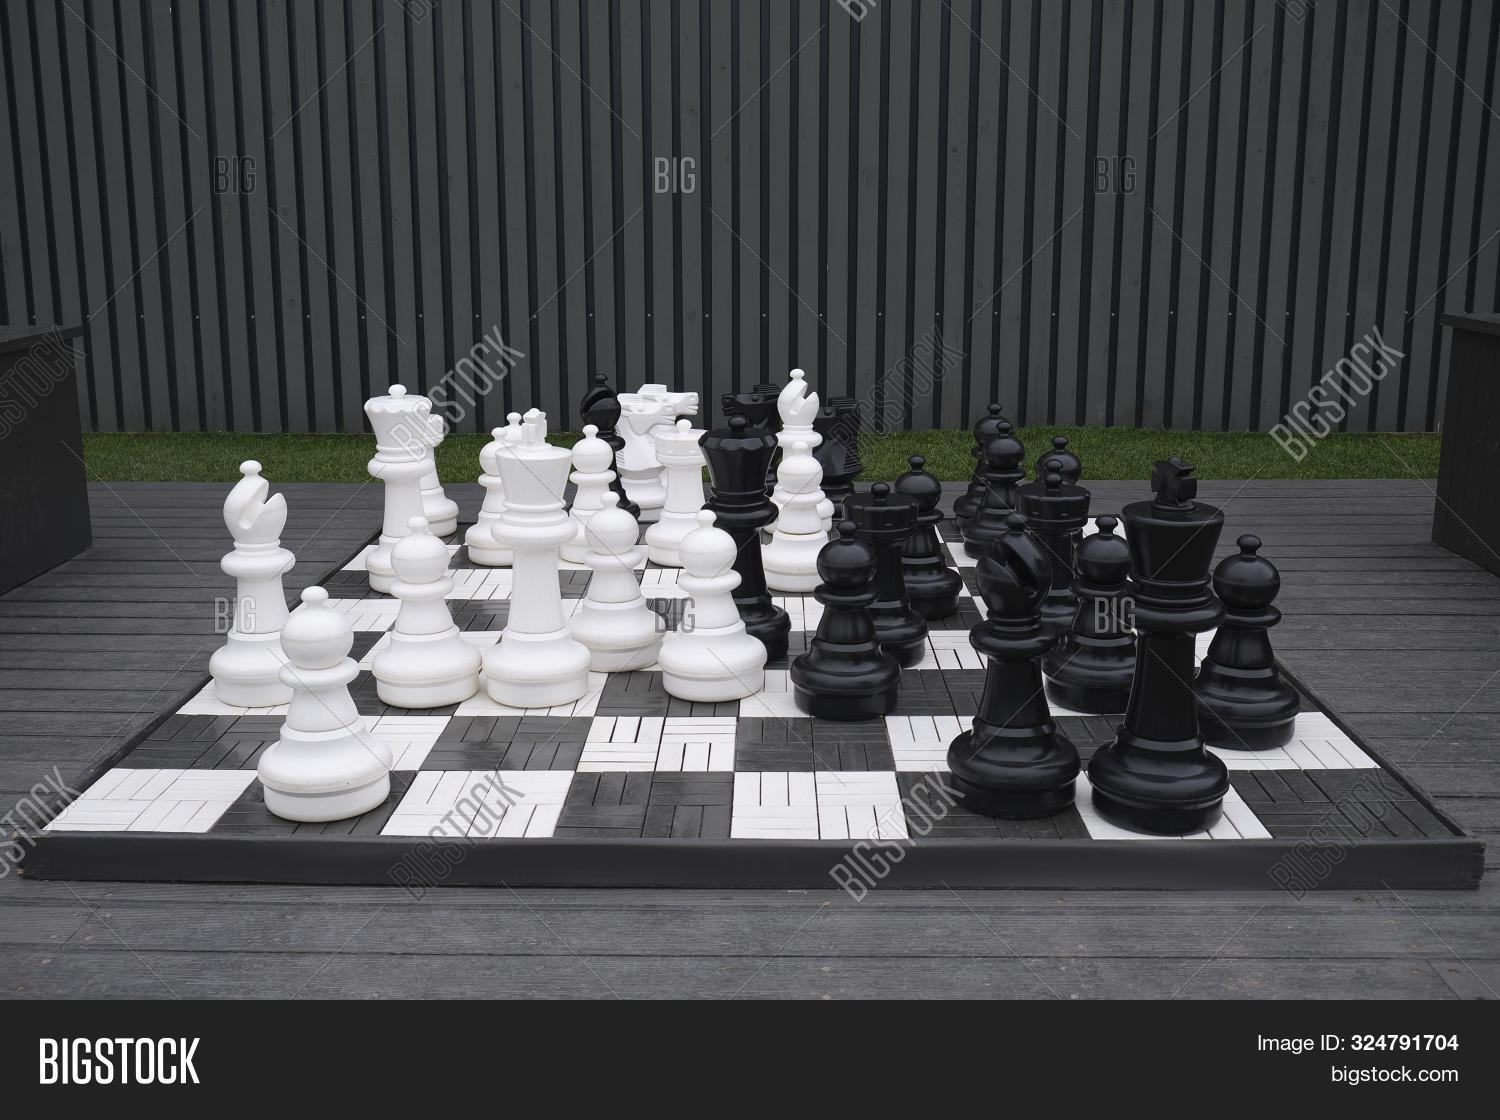 background,battle,big,bishop,black,board,brainstorm,checkmate,chess,chessboard,chessmen,close,closeup,competition,competitive,concept,develop,field,first,game,garden,giant,group,hand,huge,intelligence,king,large,leisure,lifestyle,move,objects,outdoor,outside,park,pawn,pieces,plastic,queen,rook,set,sport,strategic,strategy,team,thinking,victory,white,win